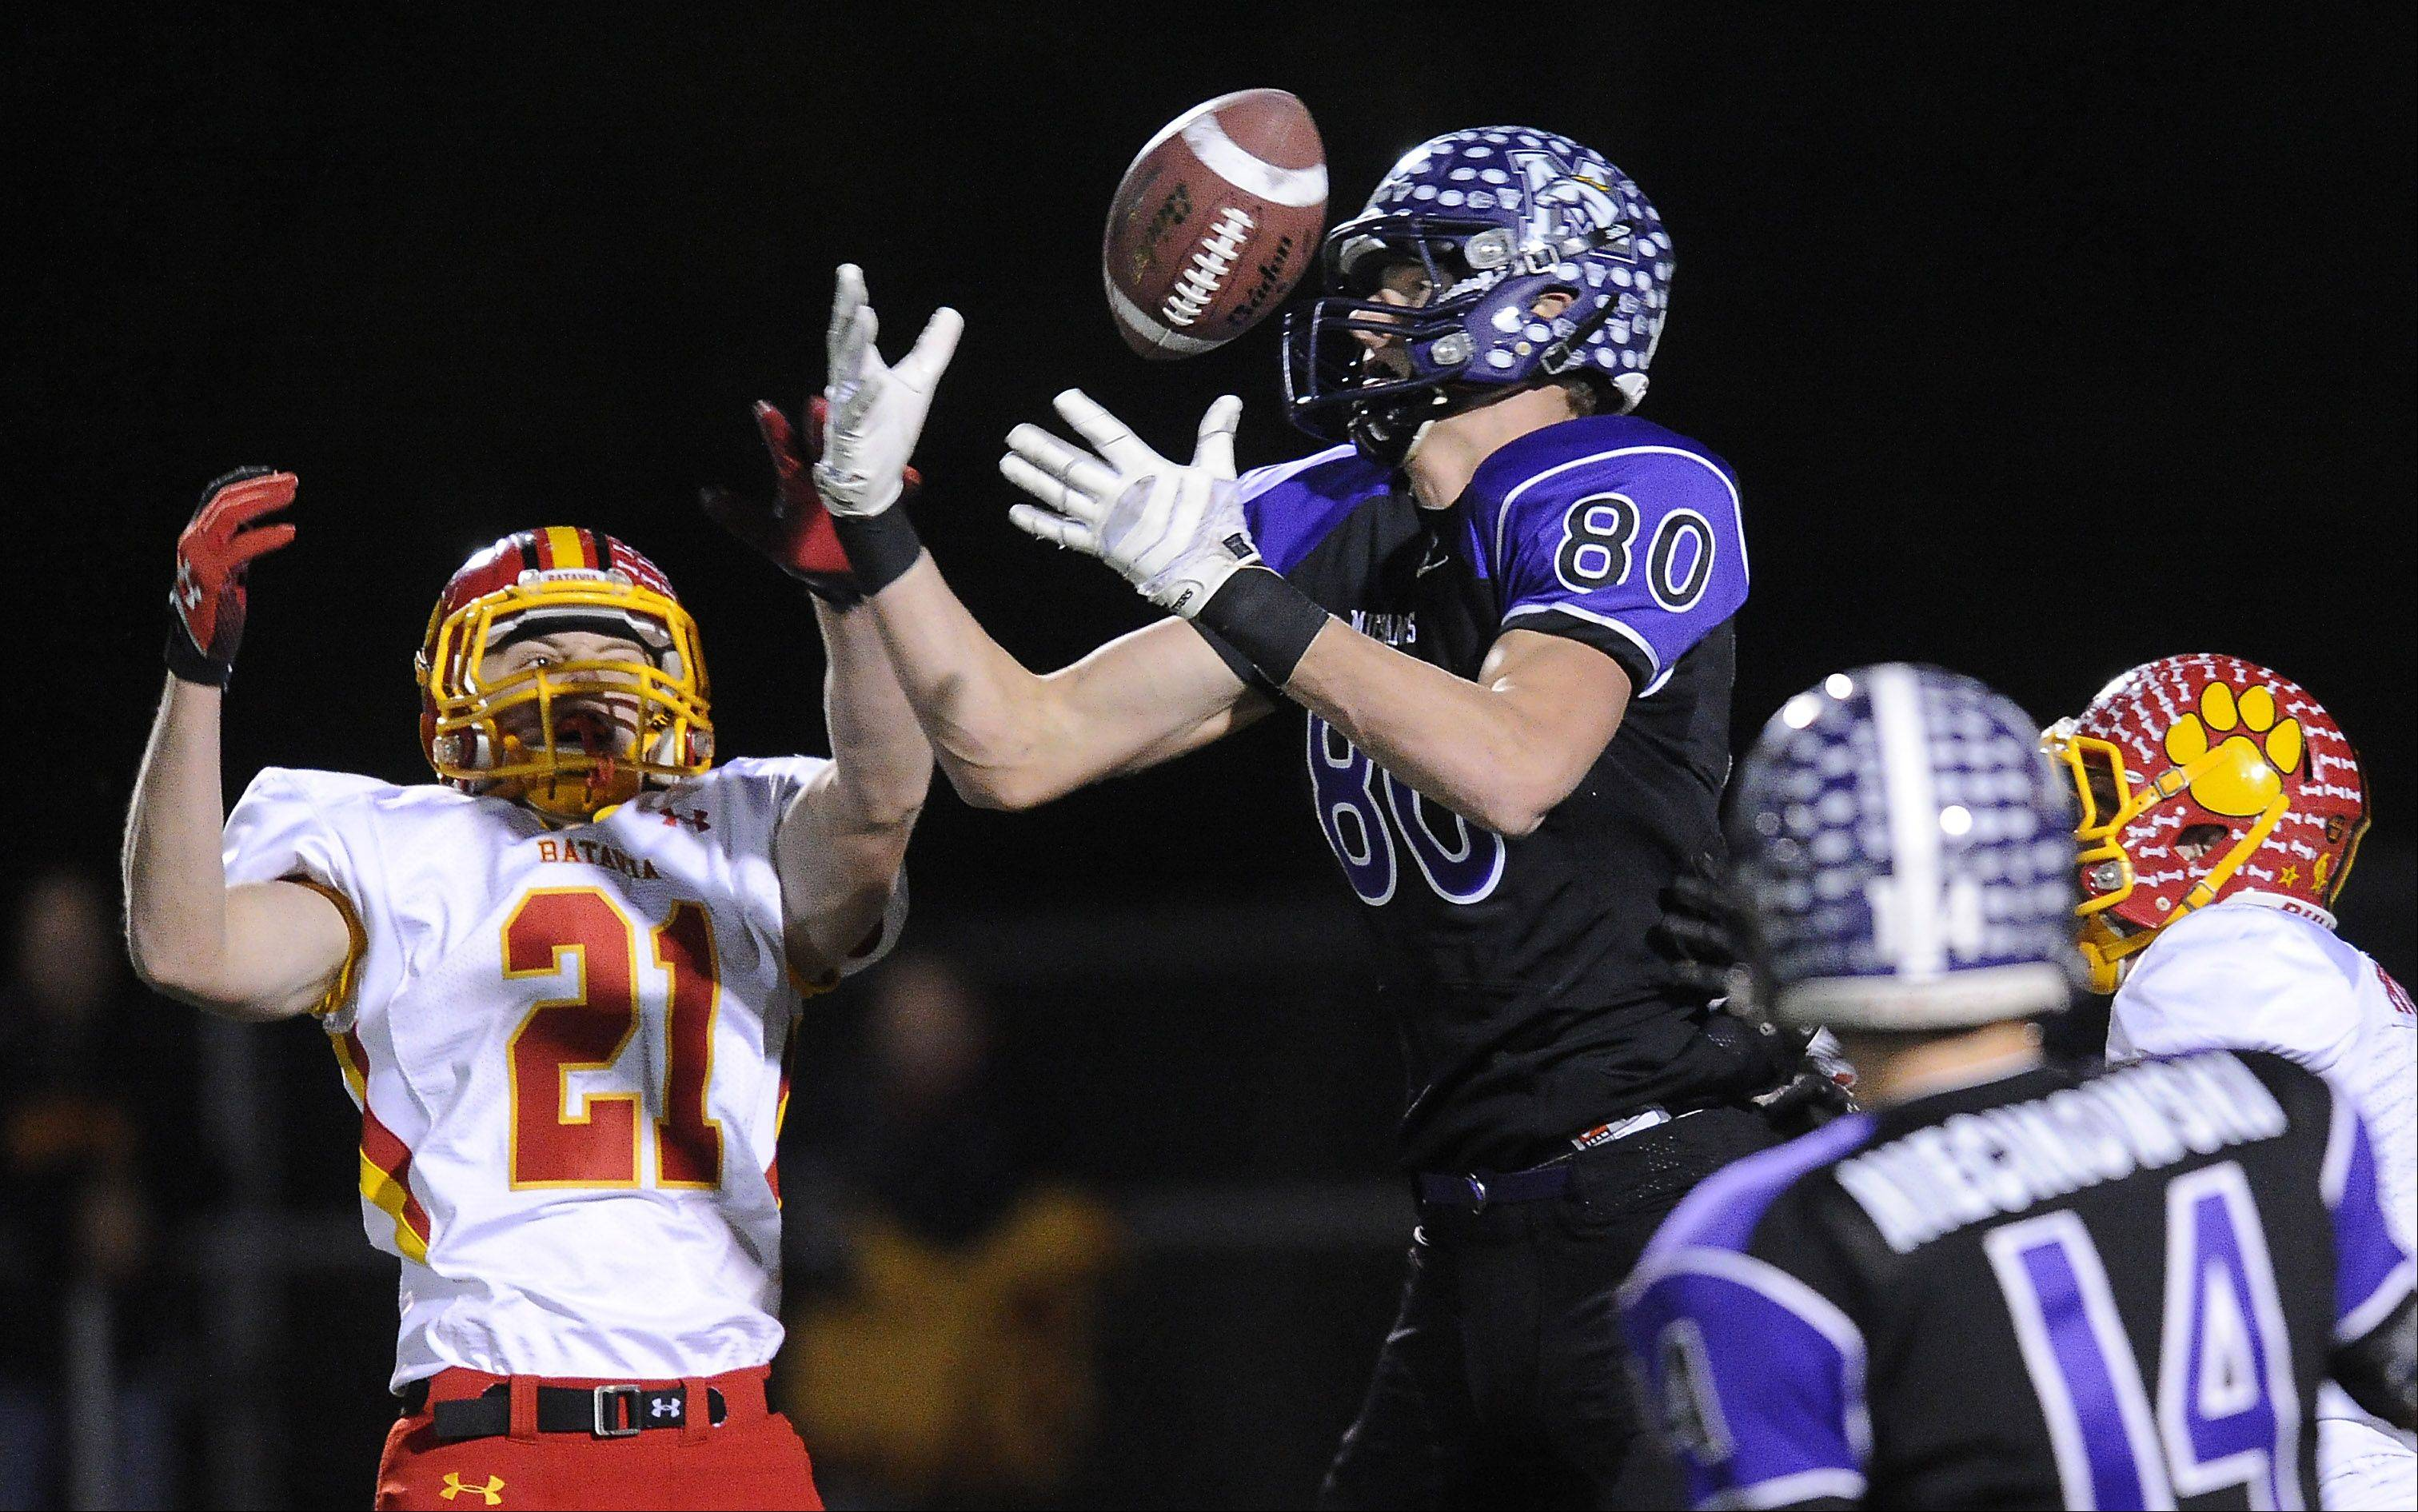 Batavia's Nick Bernabei breaks up a pass intended for Rolling Meadows' Matt Dolan in the second quarter at Rolling Meadows on Saturday.